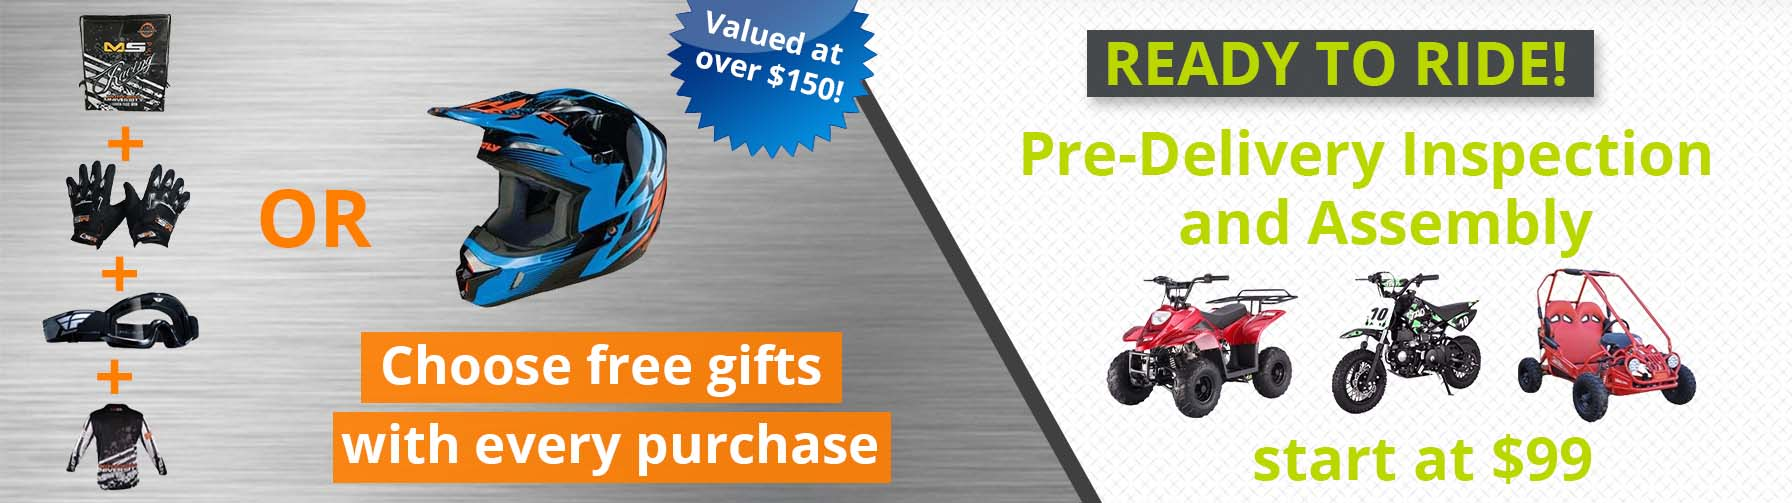 Ready to Ride! Pre-Delivery Insepction and Assembly. Start at $99. Choose free gifts with every purchase.